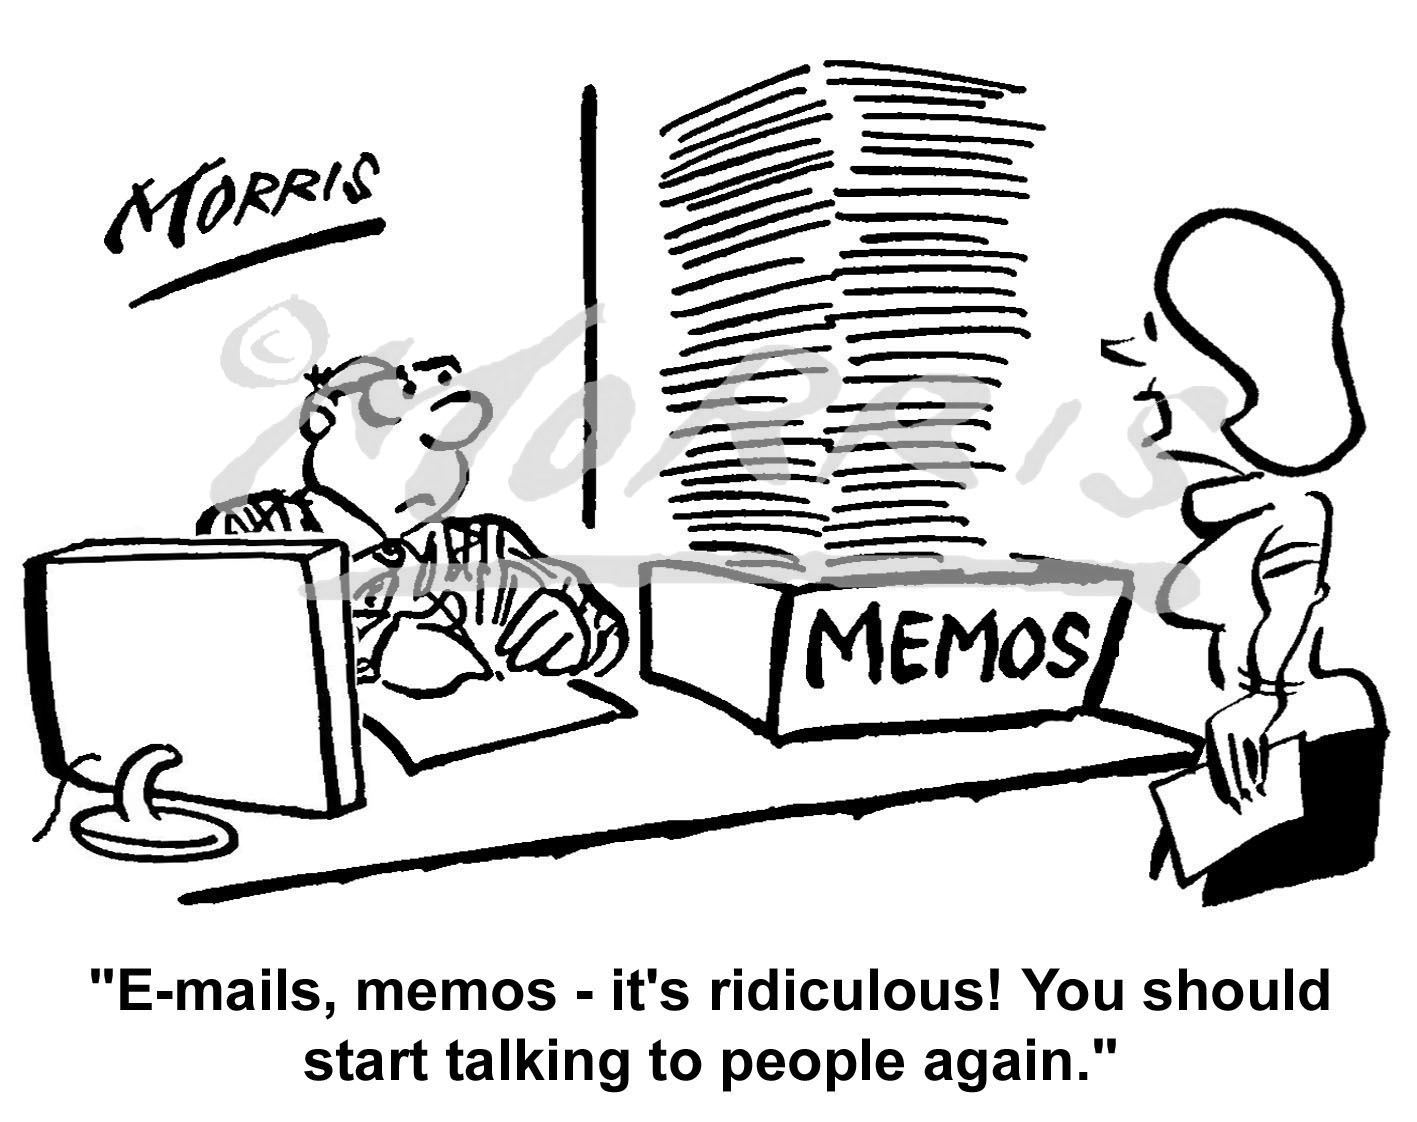 Manager PA (Personal assistant) memos cartoon Ref: 0618bw